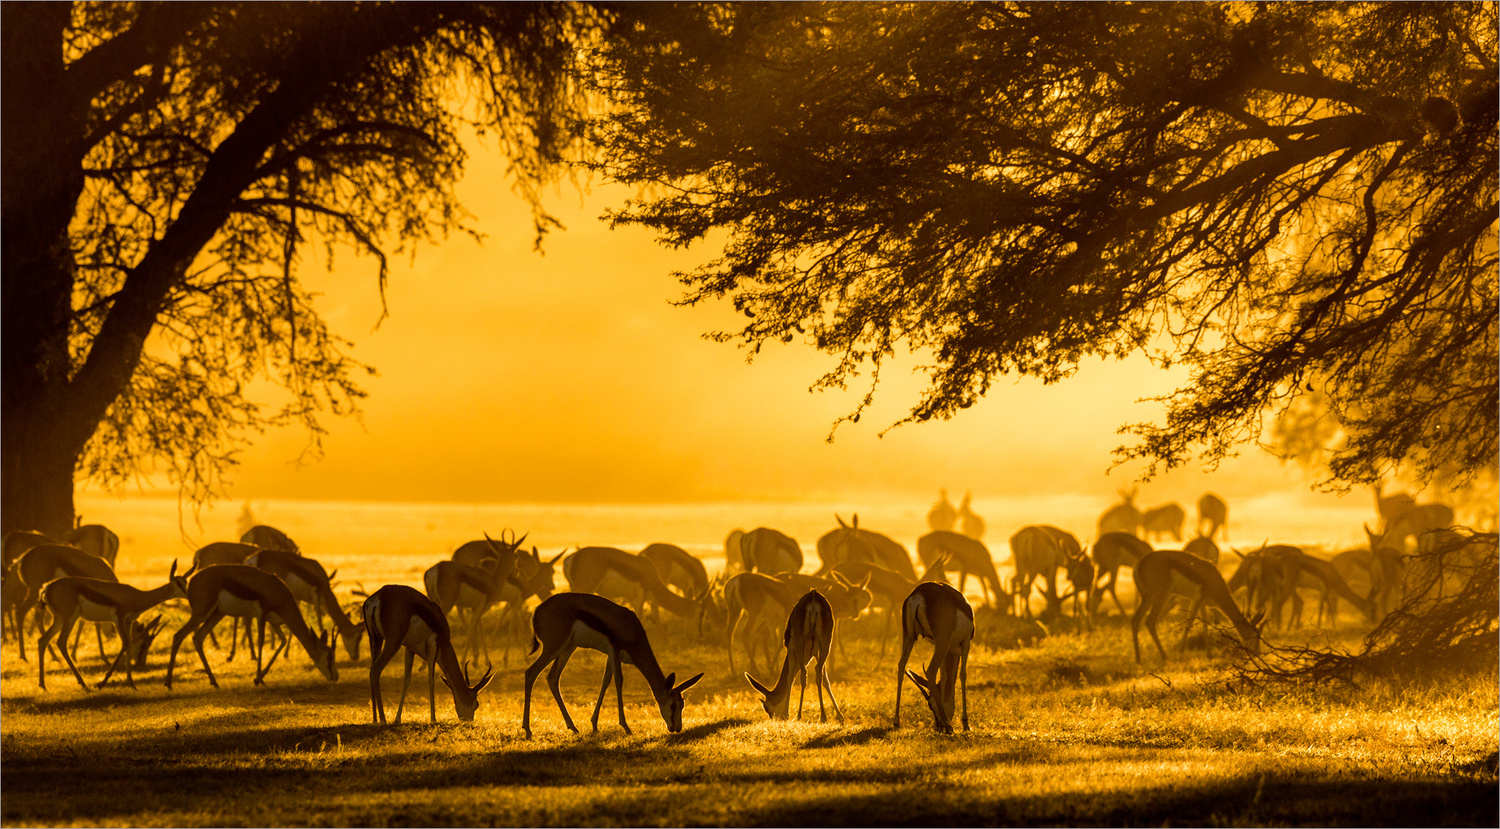 Early morning graze  by Llewellyn Louw